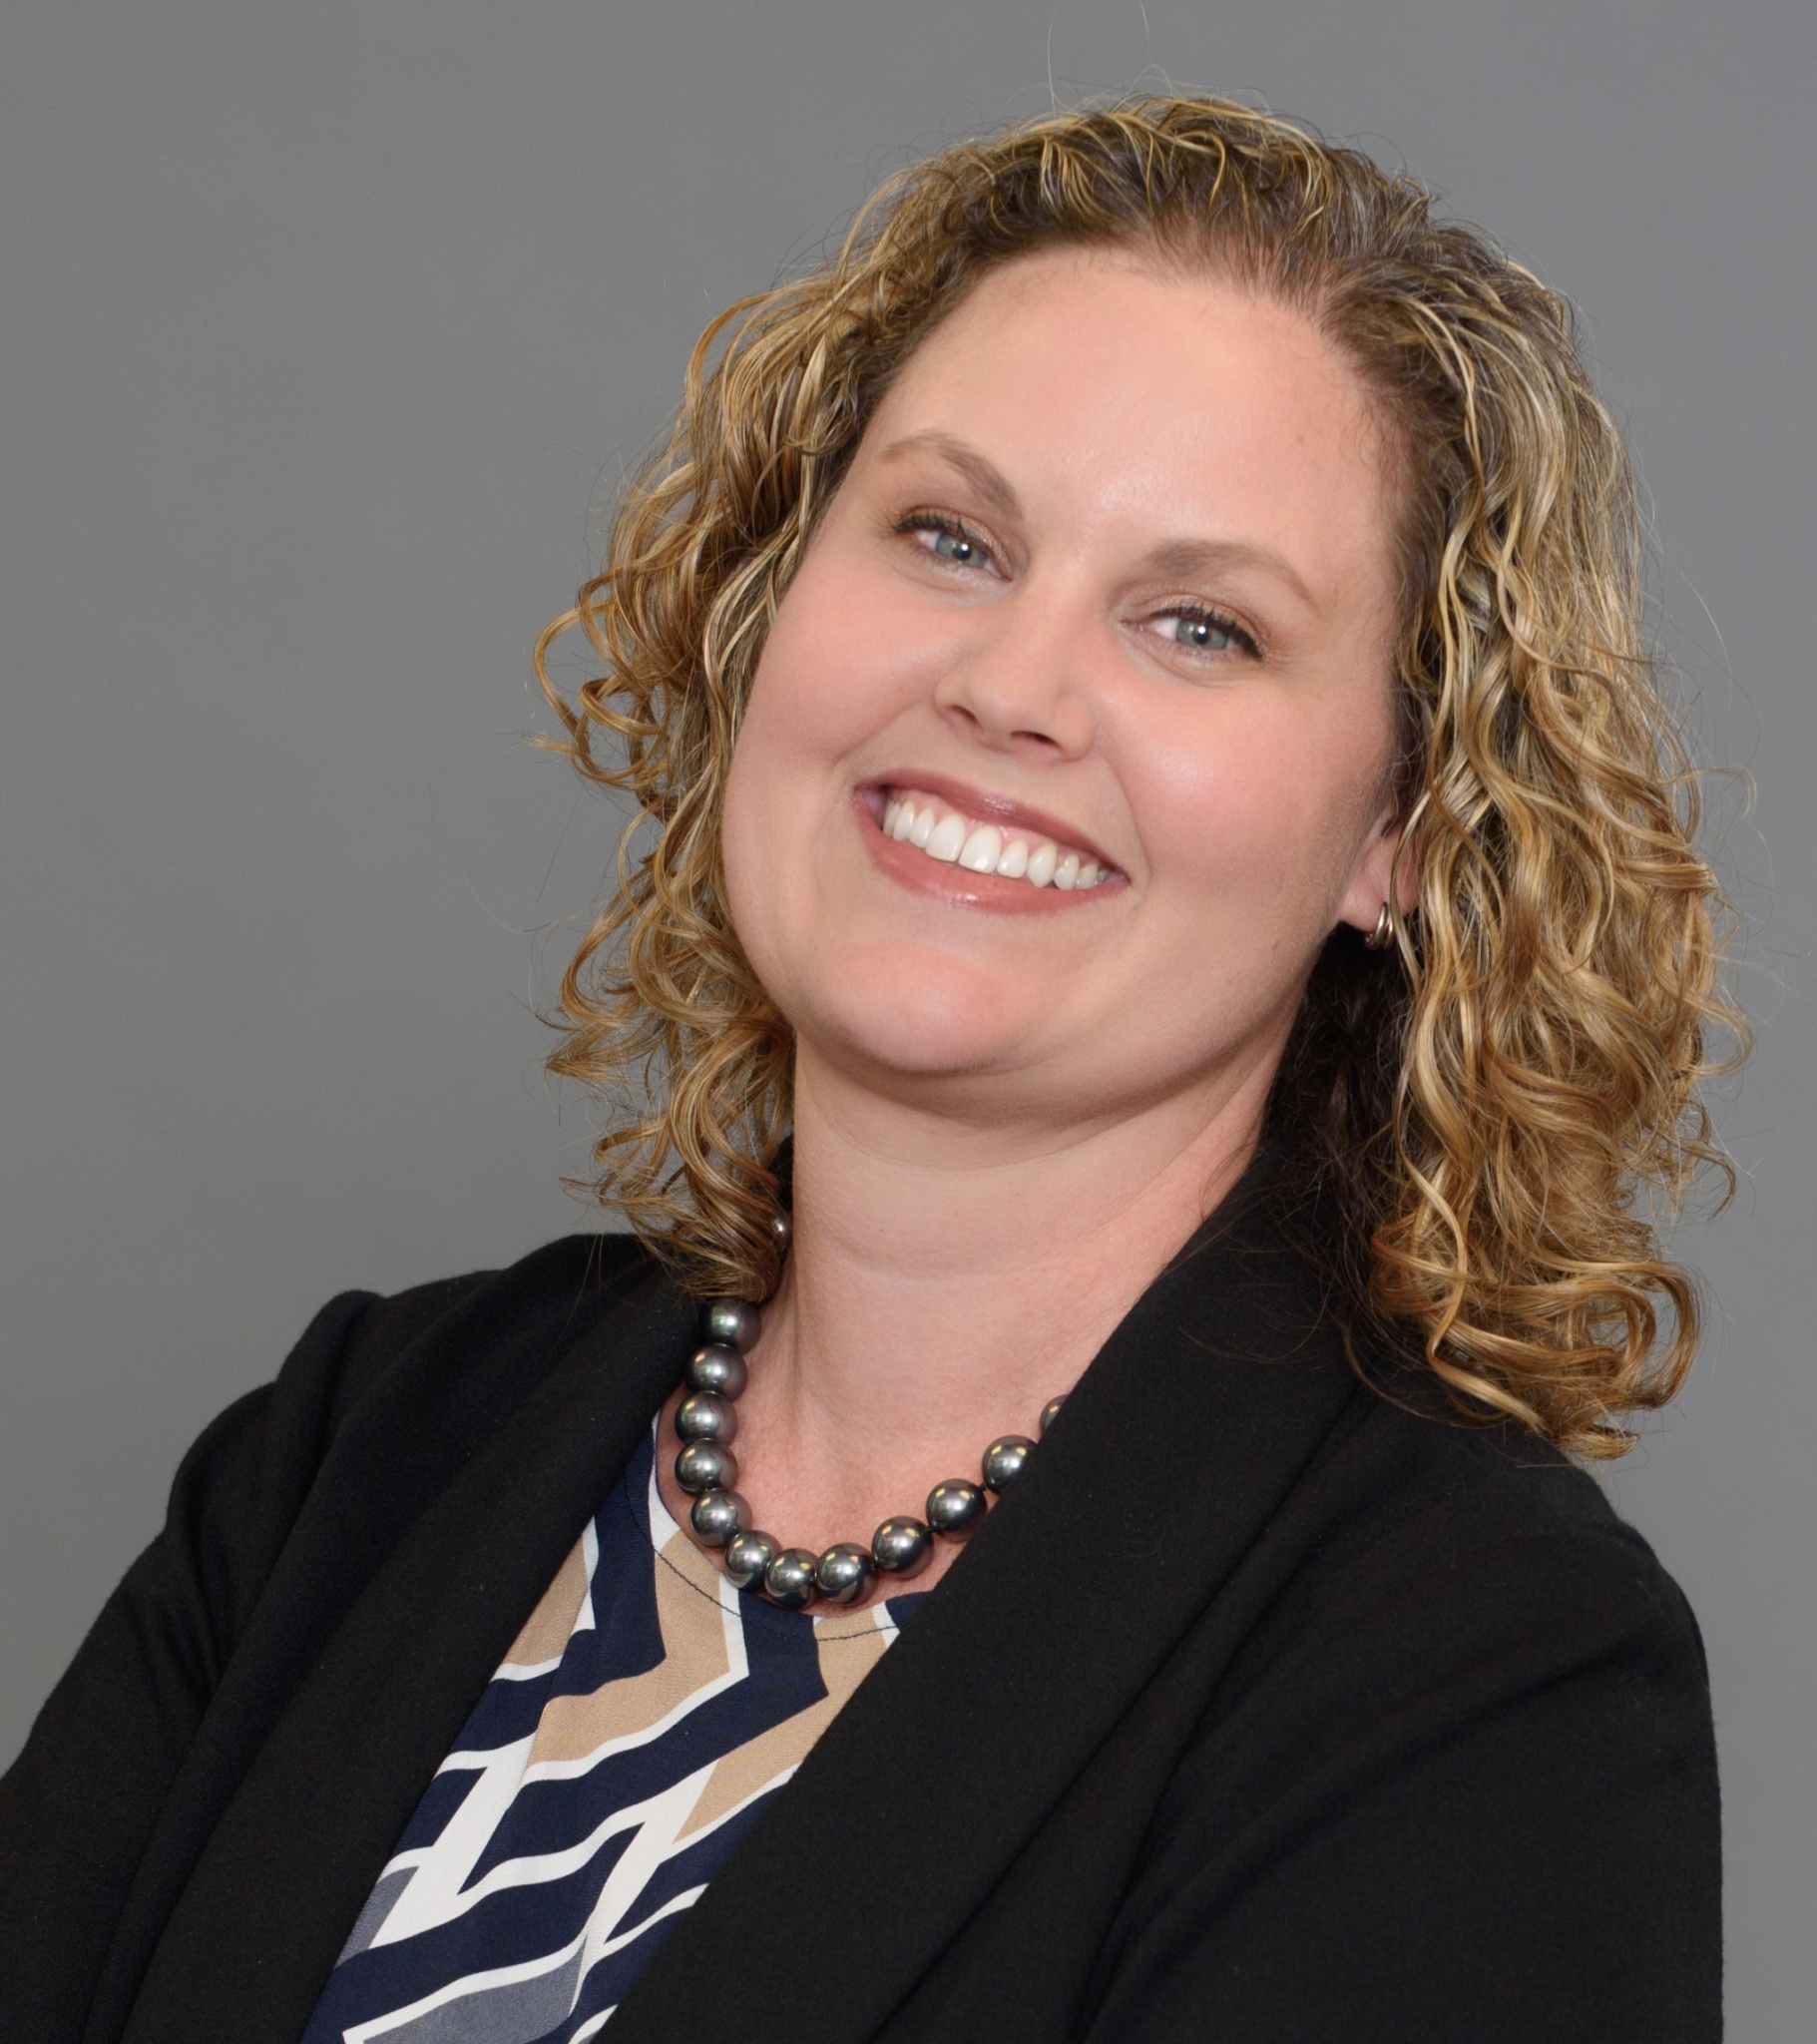 Headshot of Christie Coats, Director of Real Estate